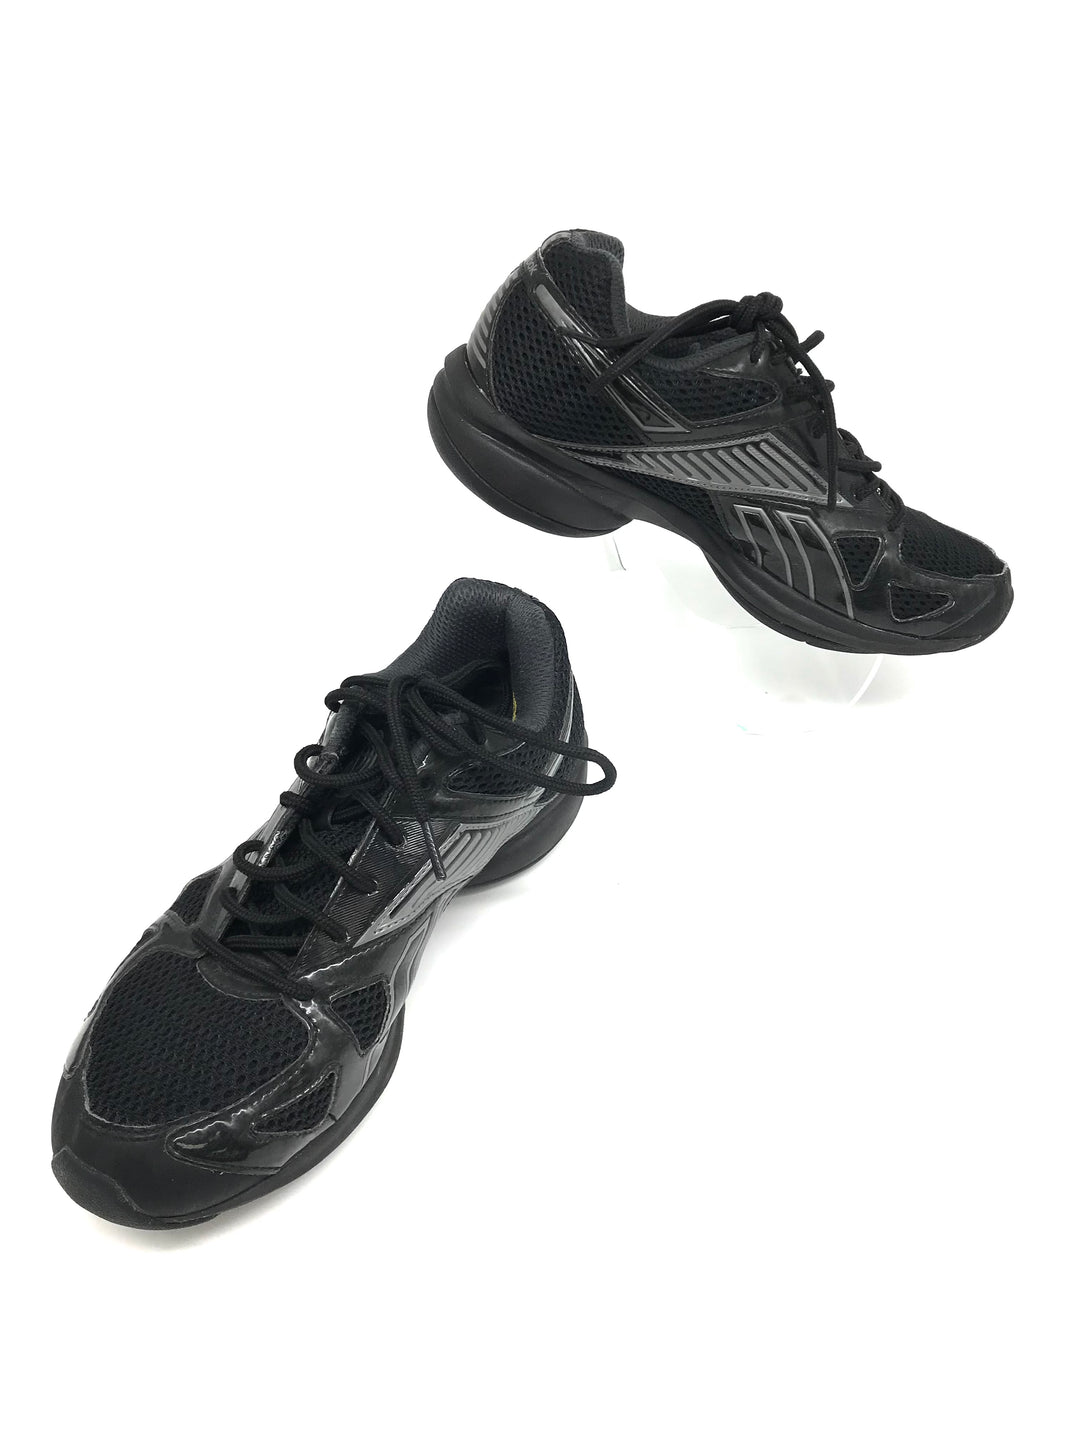 Primary Photo - BRAND: REEBOK <BR>STYLE: SHOES ATHLETIC <BR>COLOR: BLACK <BR>SIZE: 8 <BR>SKU: 262-26241-43781